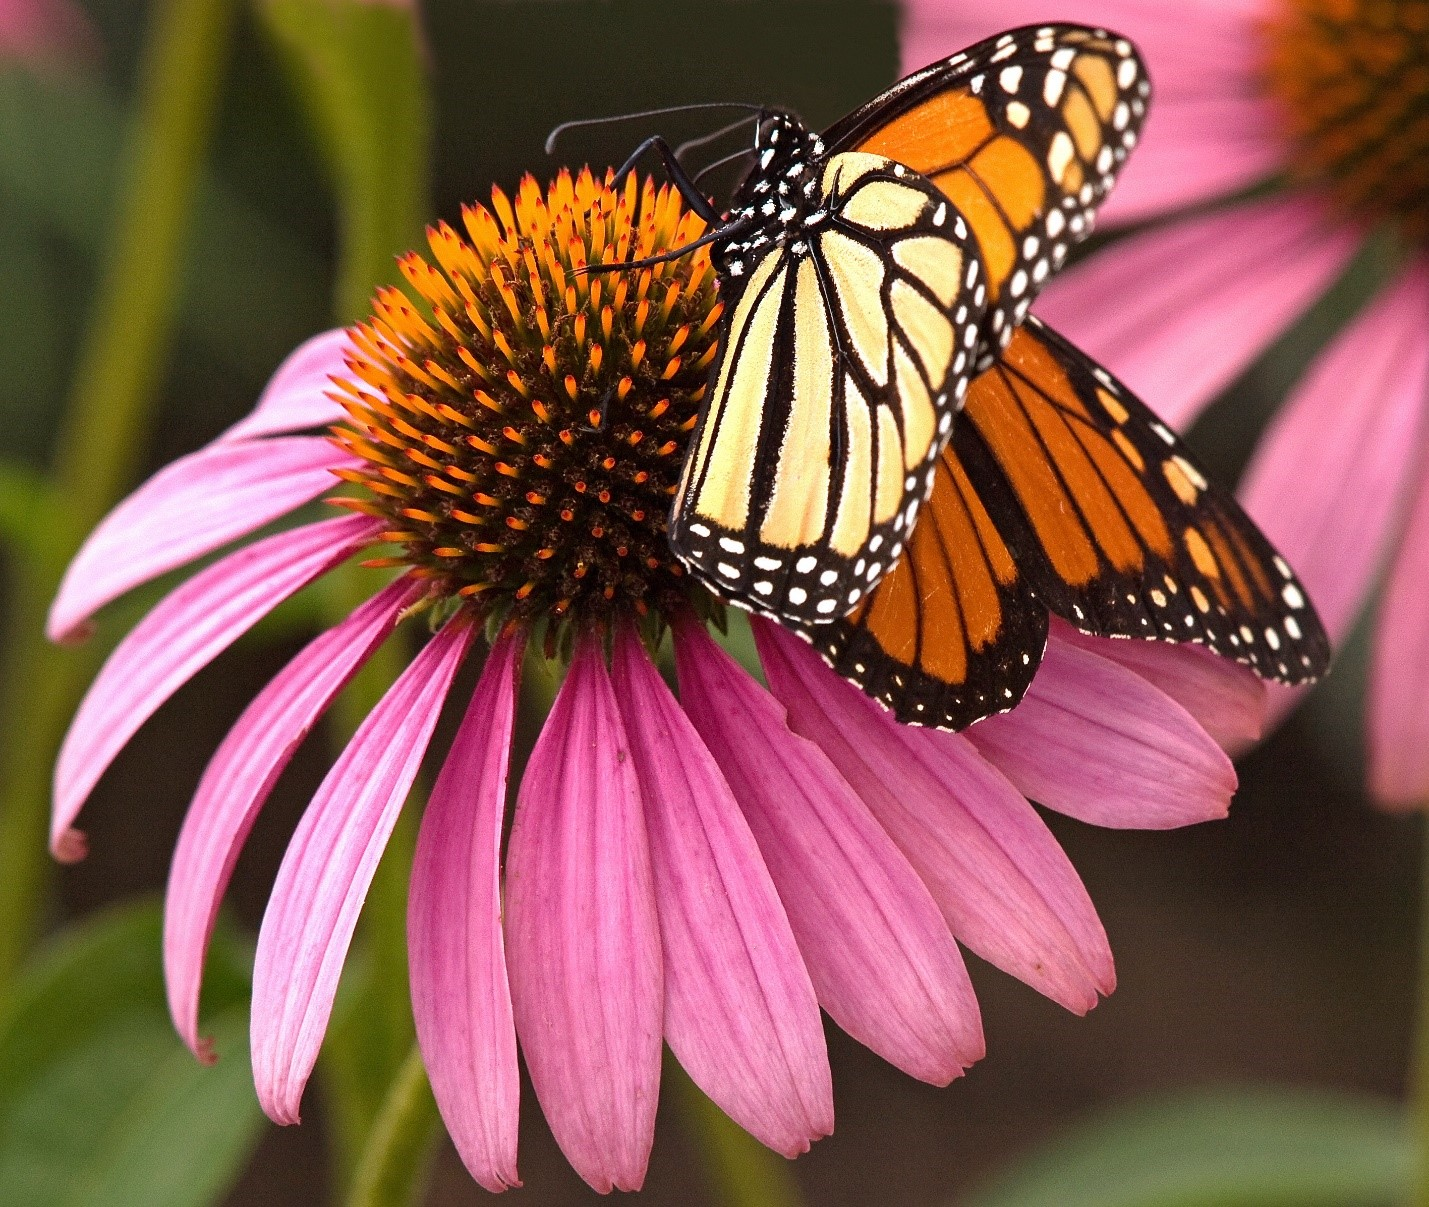 Photo: Shelley O'Connell, QC, Photo Club Member Include native plants in your butterfly garden like asters, milkweeds, Joe pye weeds and Echinacea.